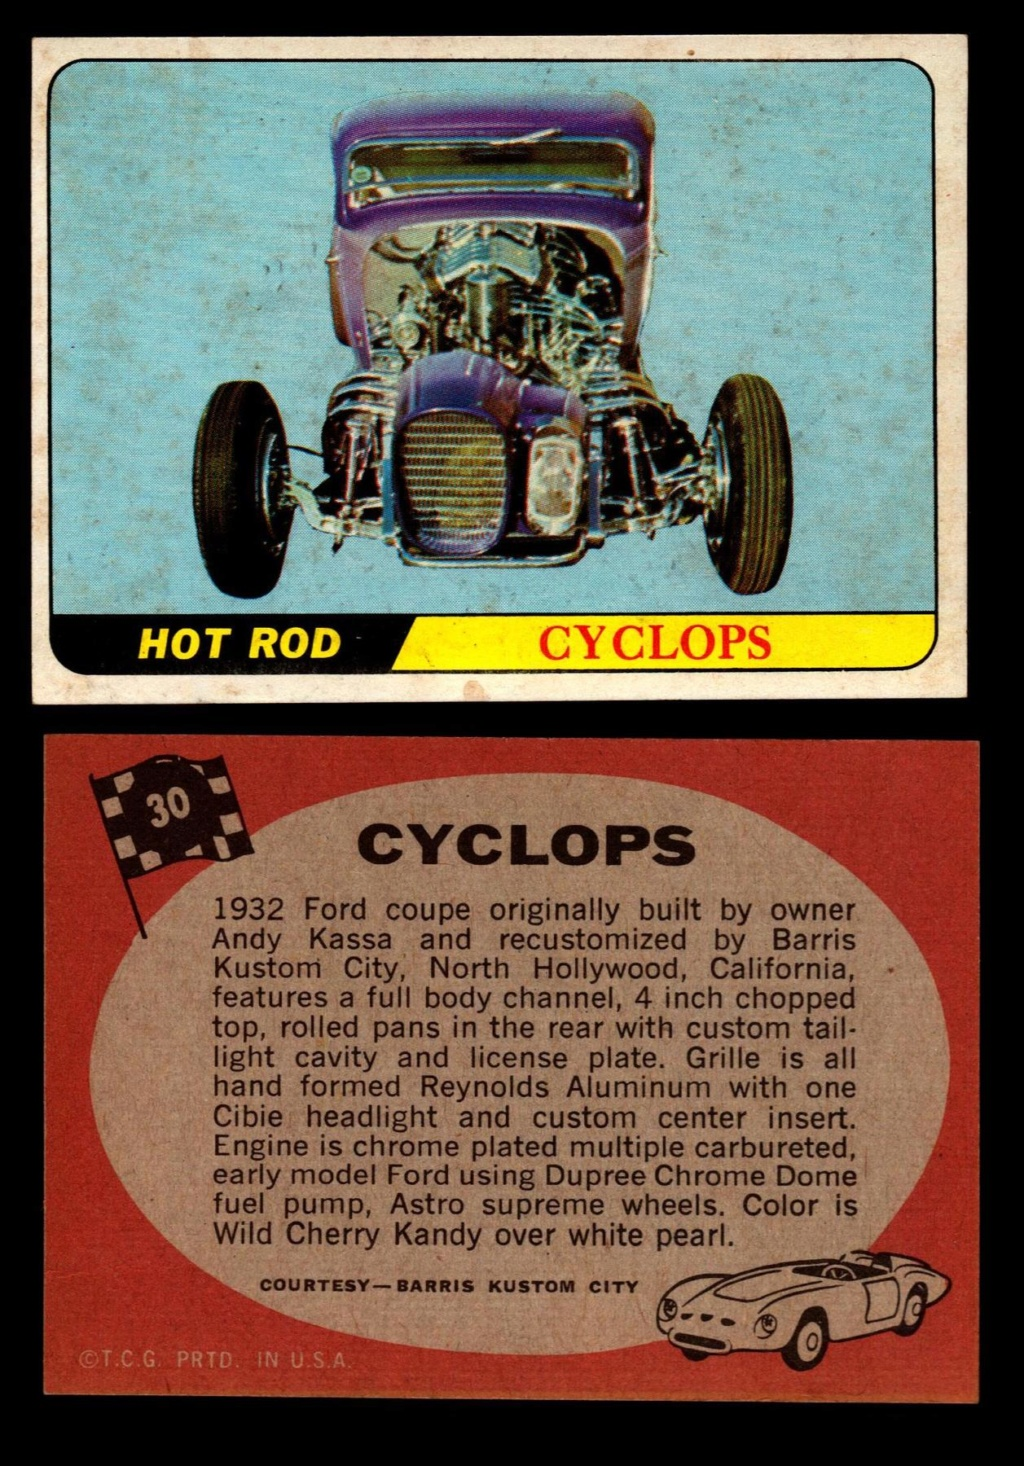 Hot Rods Topps - Vintage Trading Cards 1968 - Custom car - Dragster - Racer - Dream car - Barris Kustom City - Ed Roth Darrill Starbird, Gene Winfield, Bill Cuchenberry - Page 2 30_03410